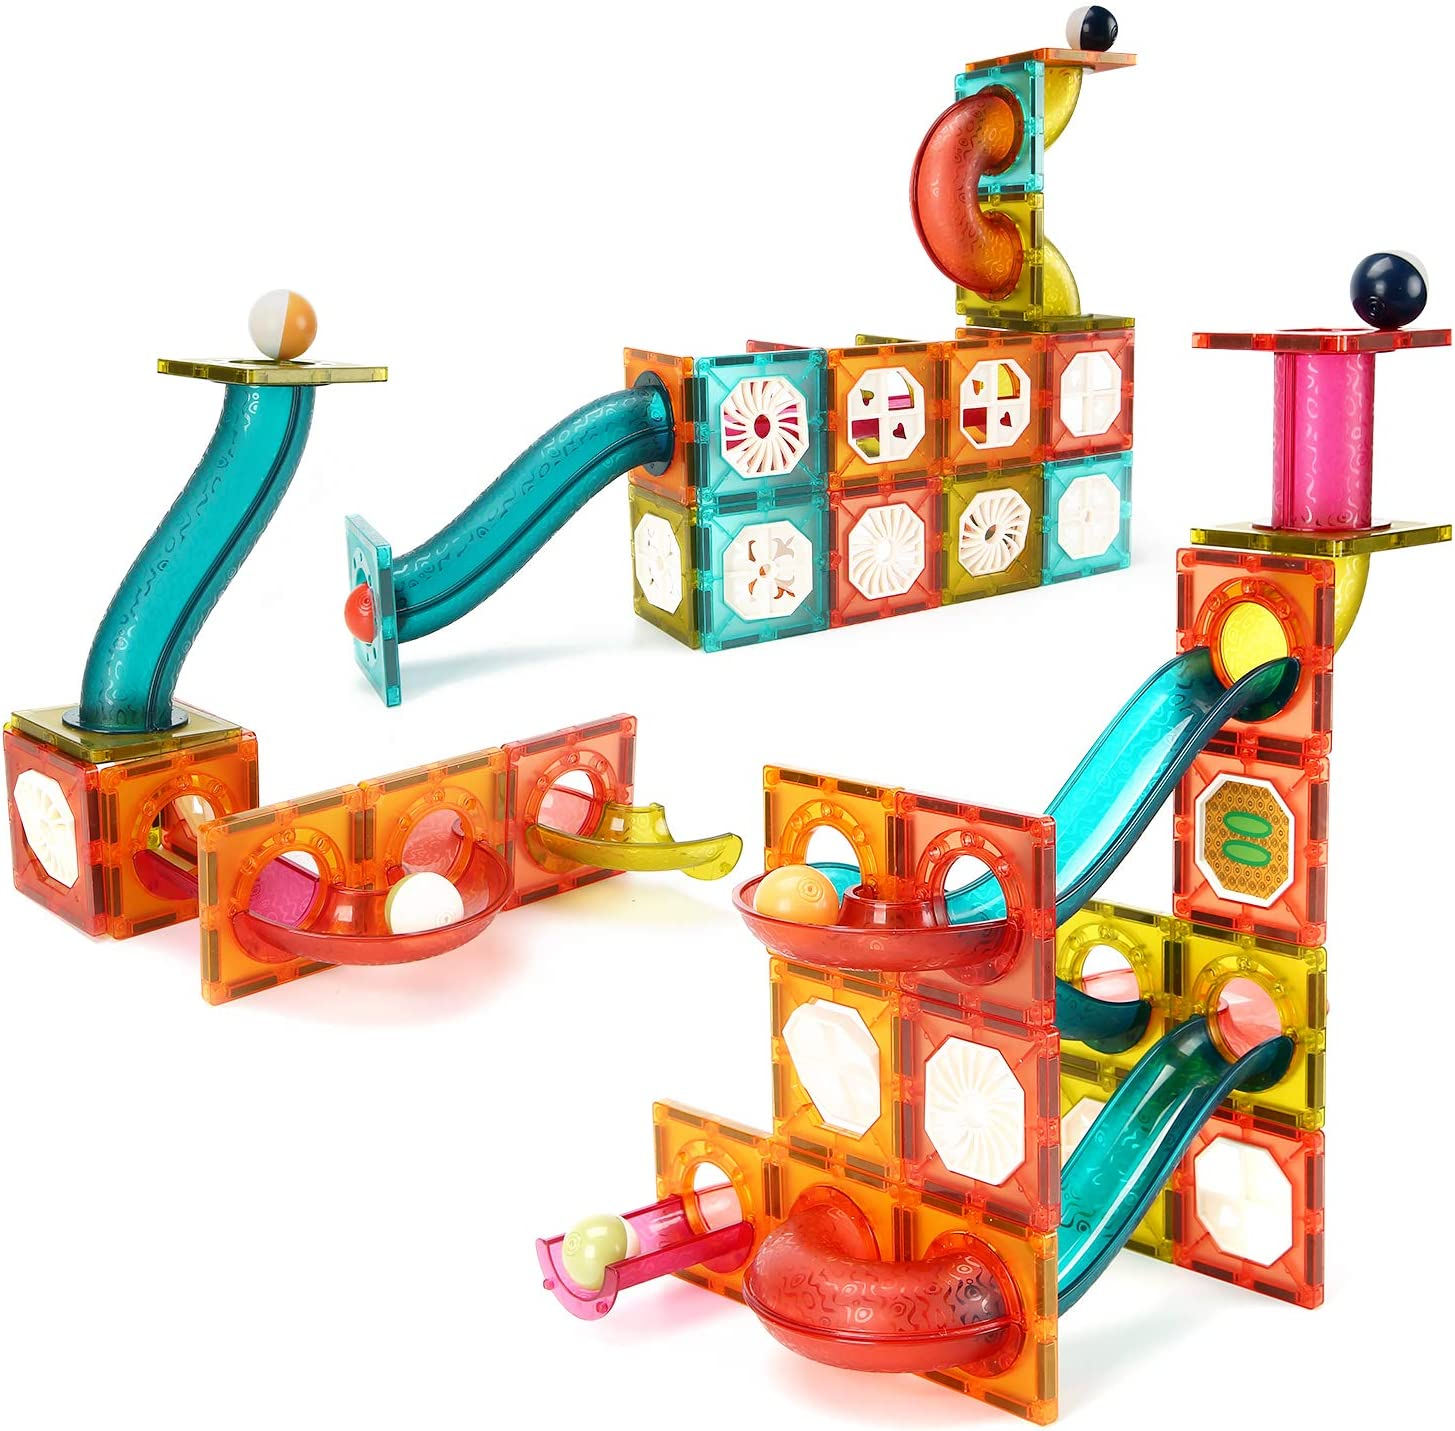 Magnetic Tiles Magnetic Blocks Building Toys